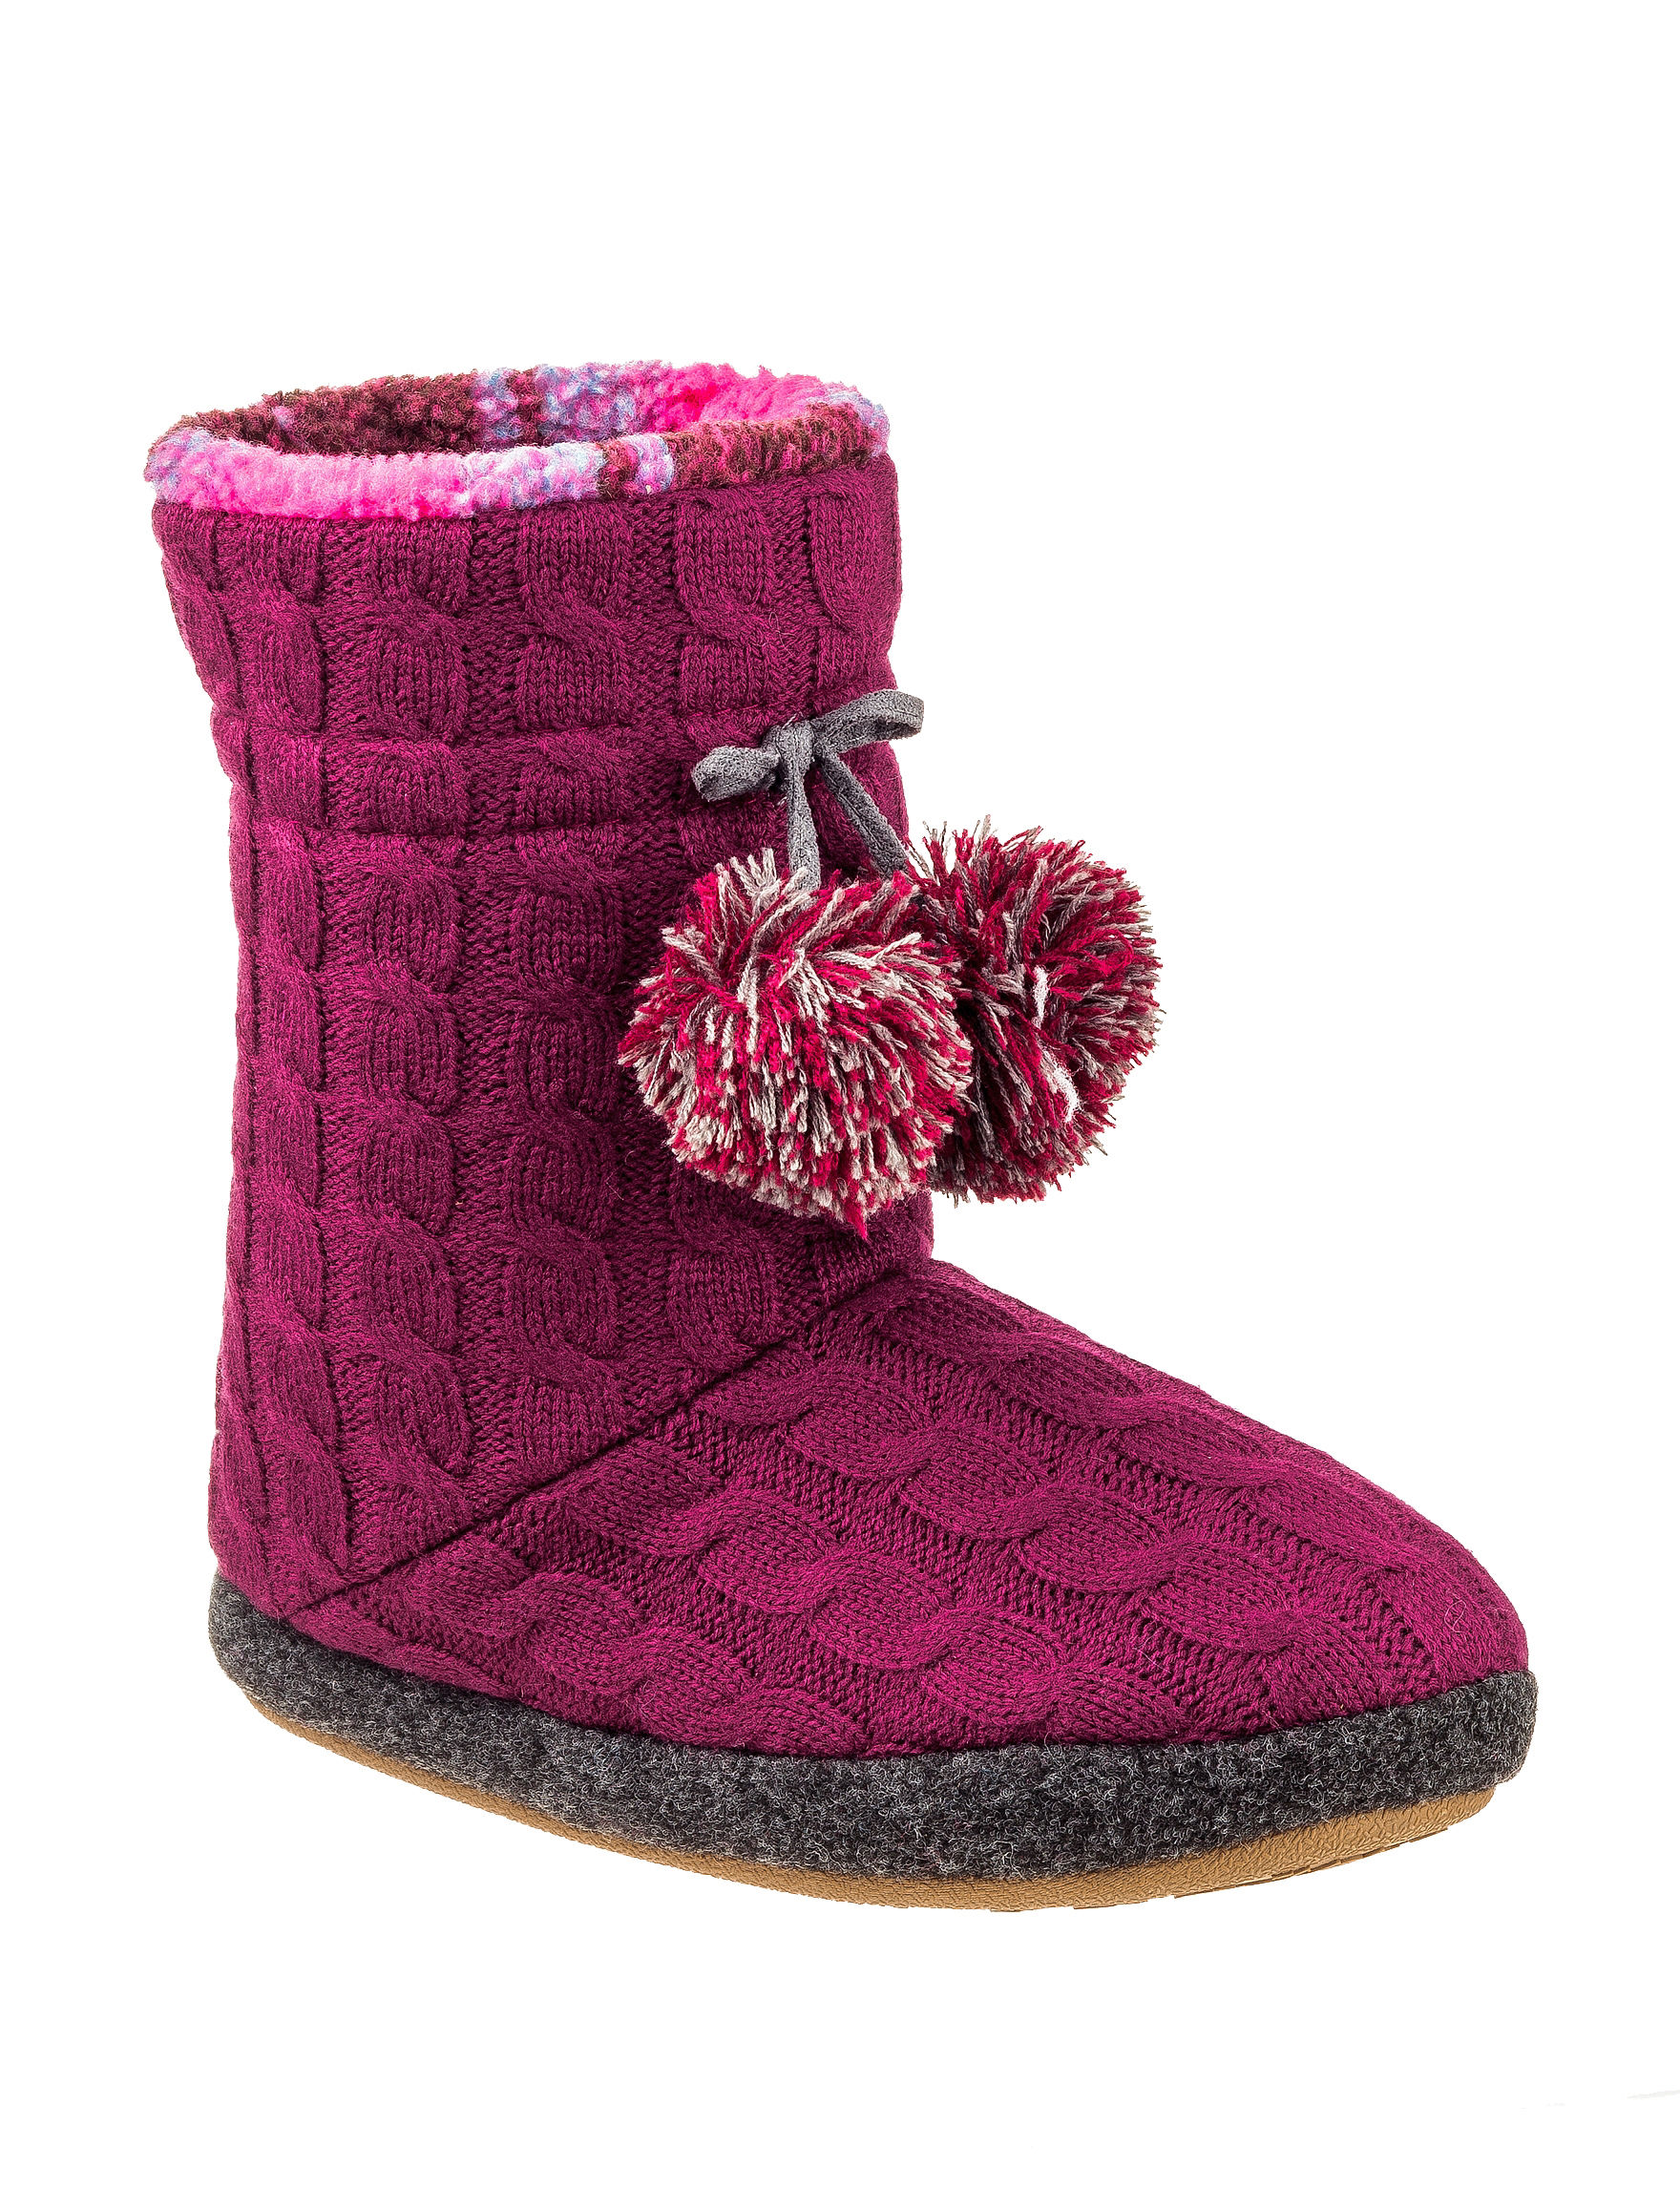 Cuddl Duds Purple Slipper Boots & Booties